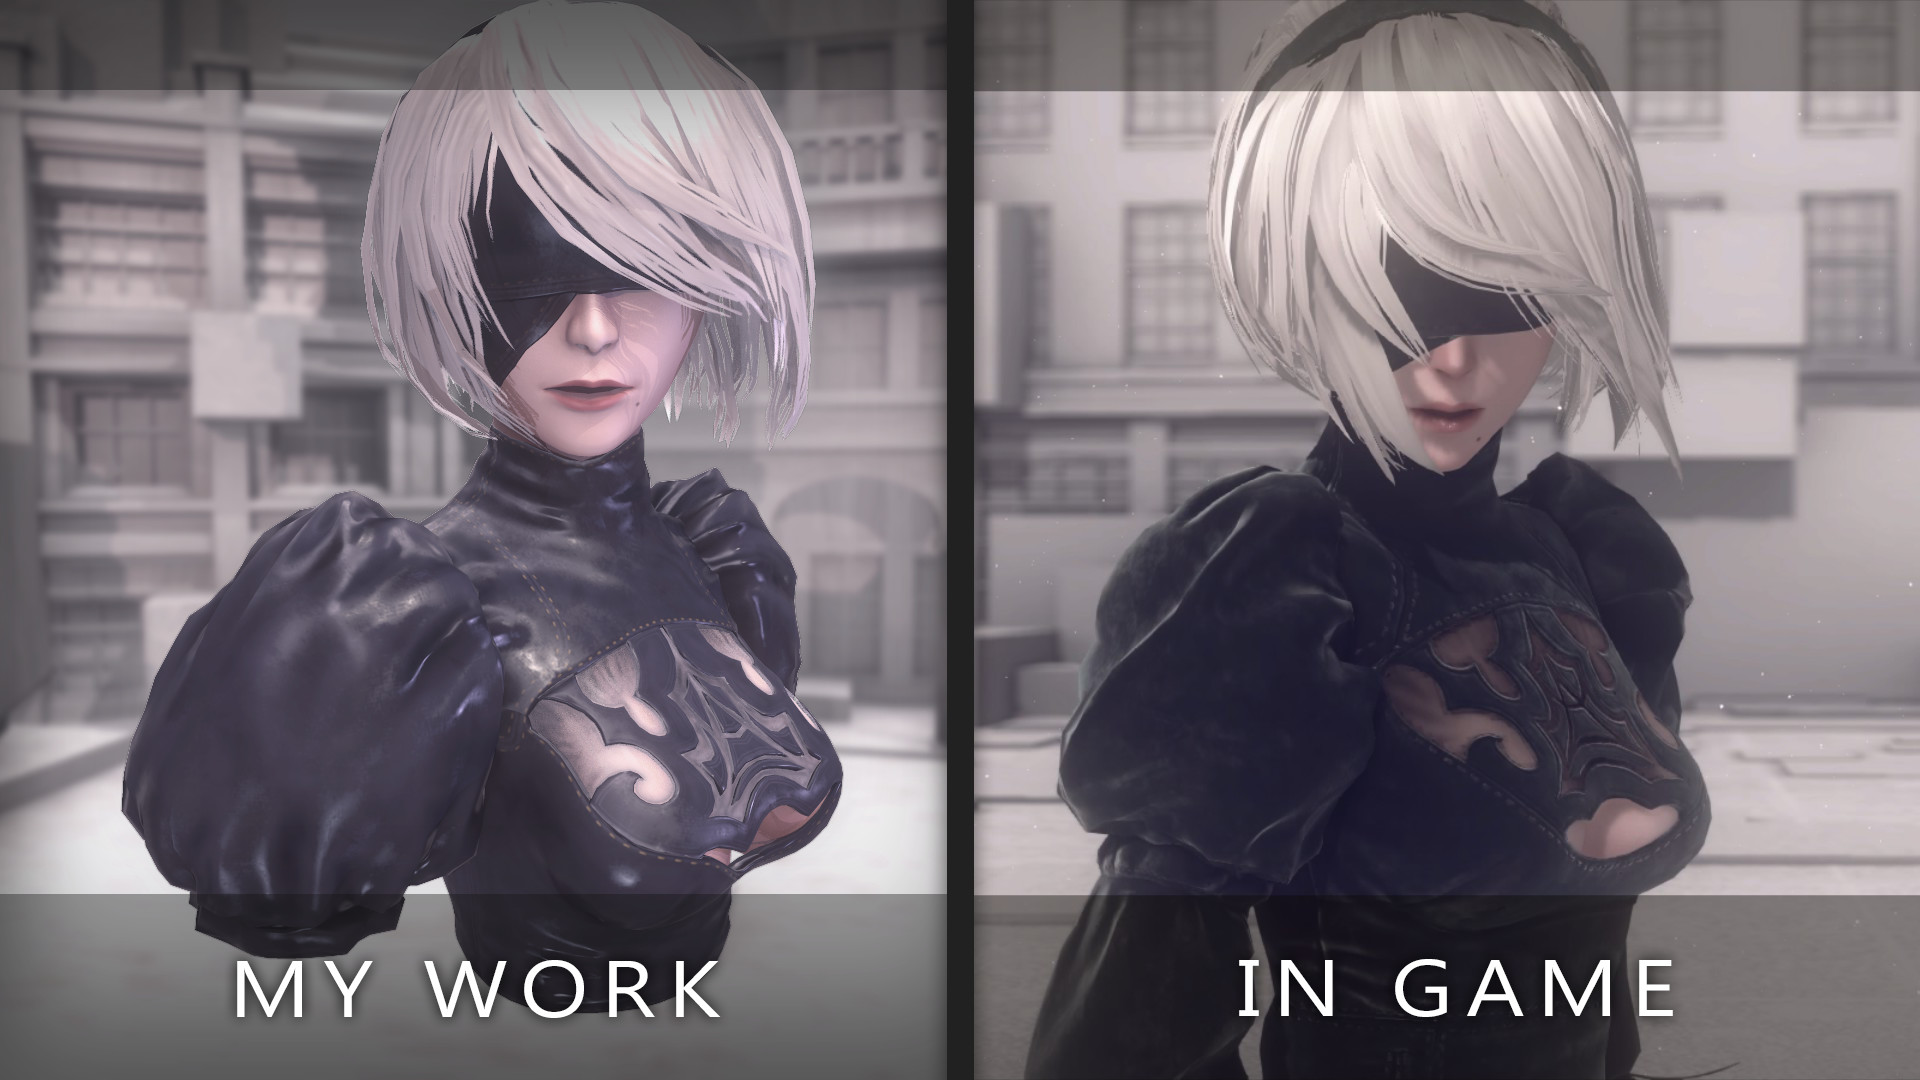 tanguy oliveras - 2b character